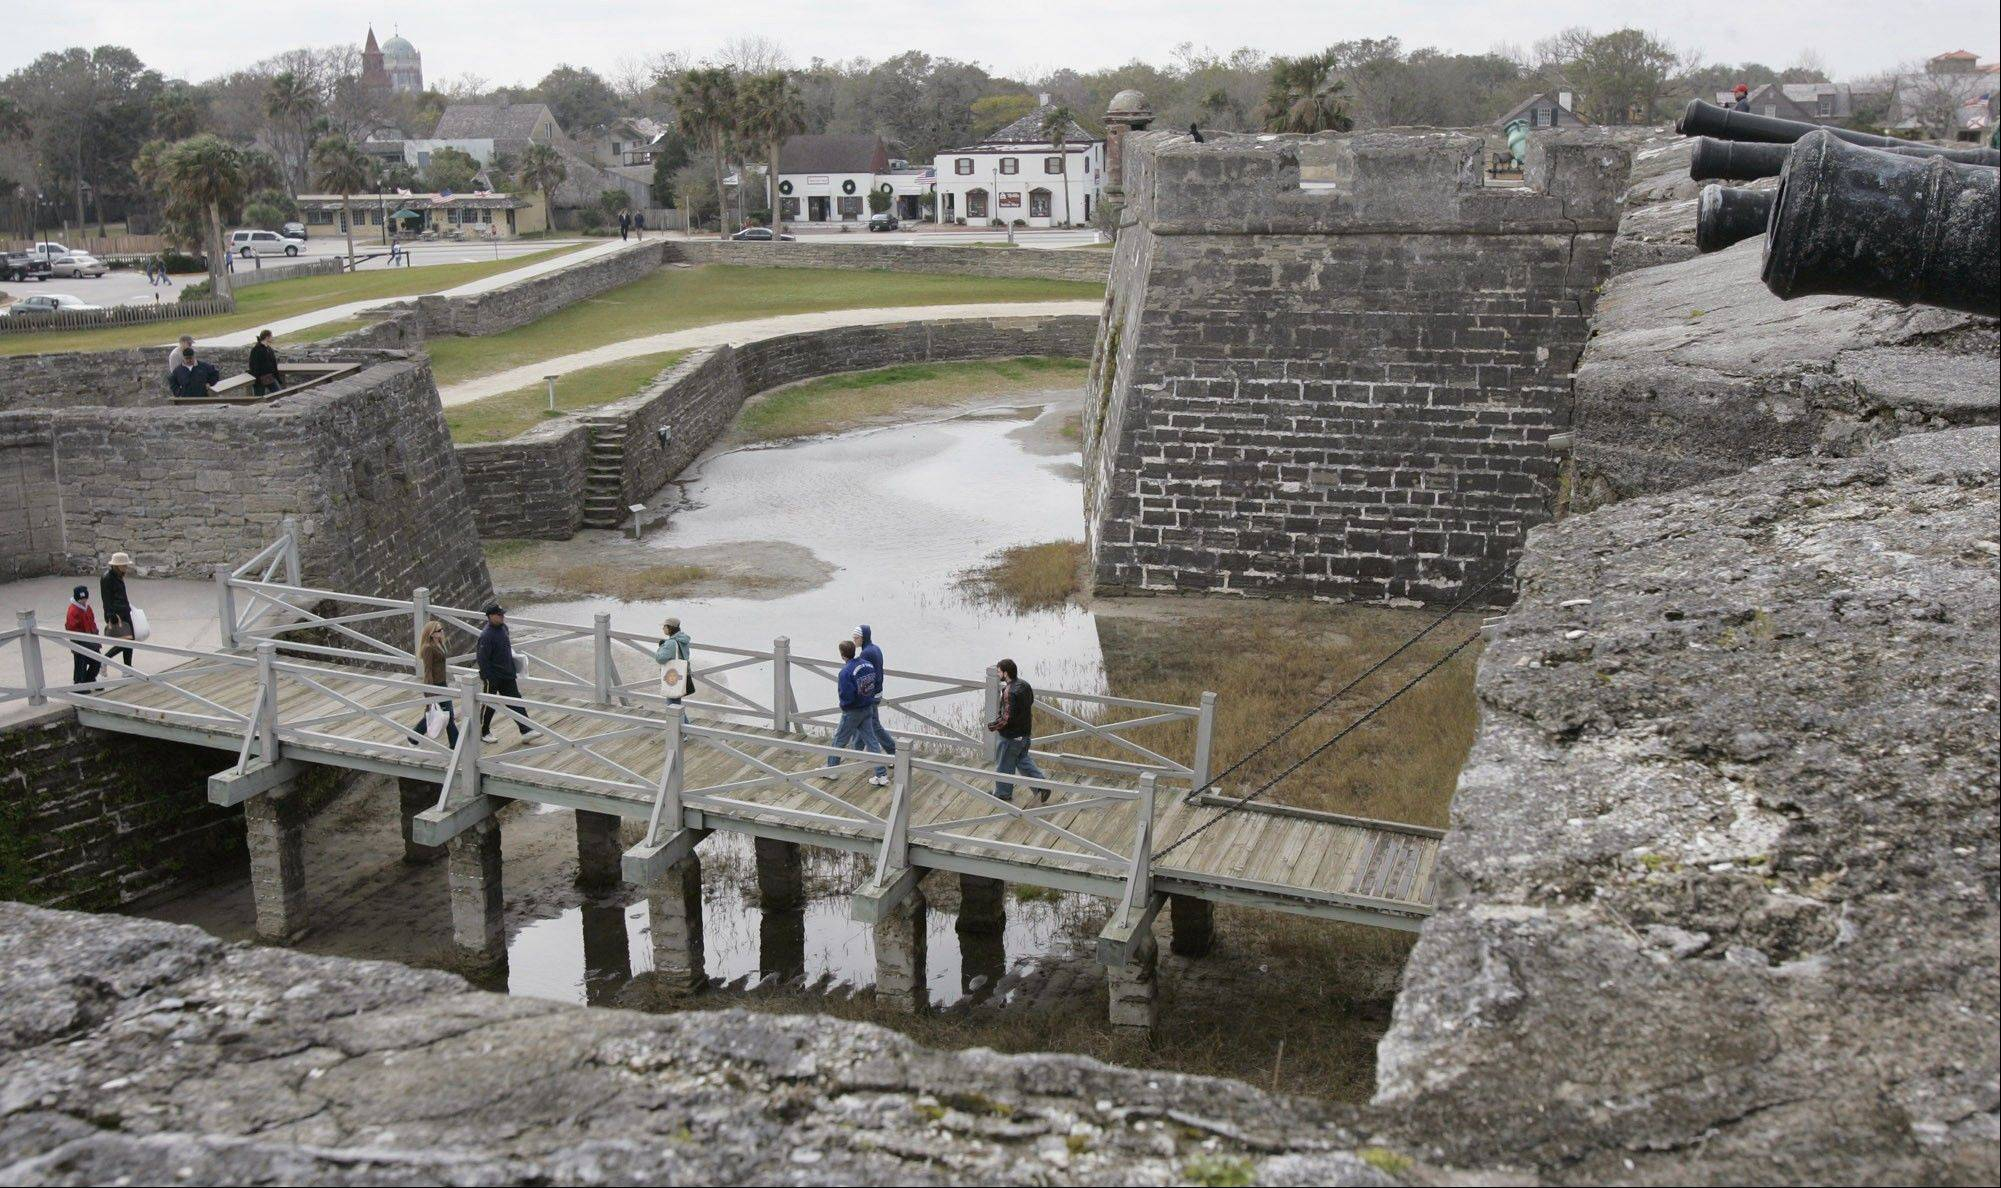 Visitors explore the Castillo de San Marcos in St. Augustine, Fla. The nation's oldest fort was built by Spanish settlers between 1672 and 1695 and used to fight off pirates, hostile natives, French, British and South Carolinian forces.